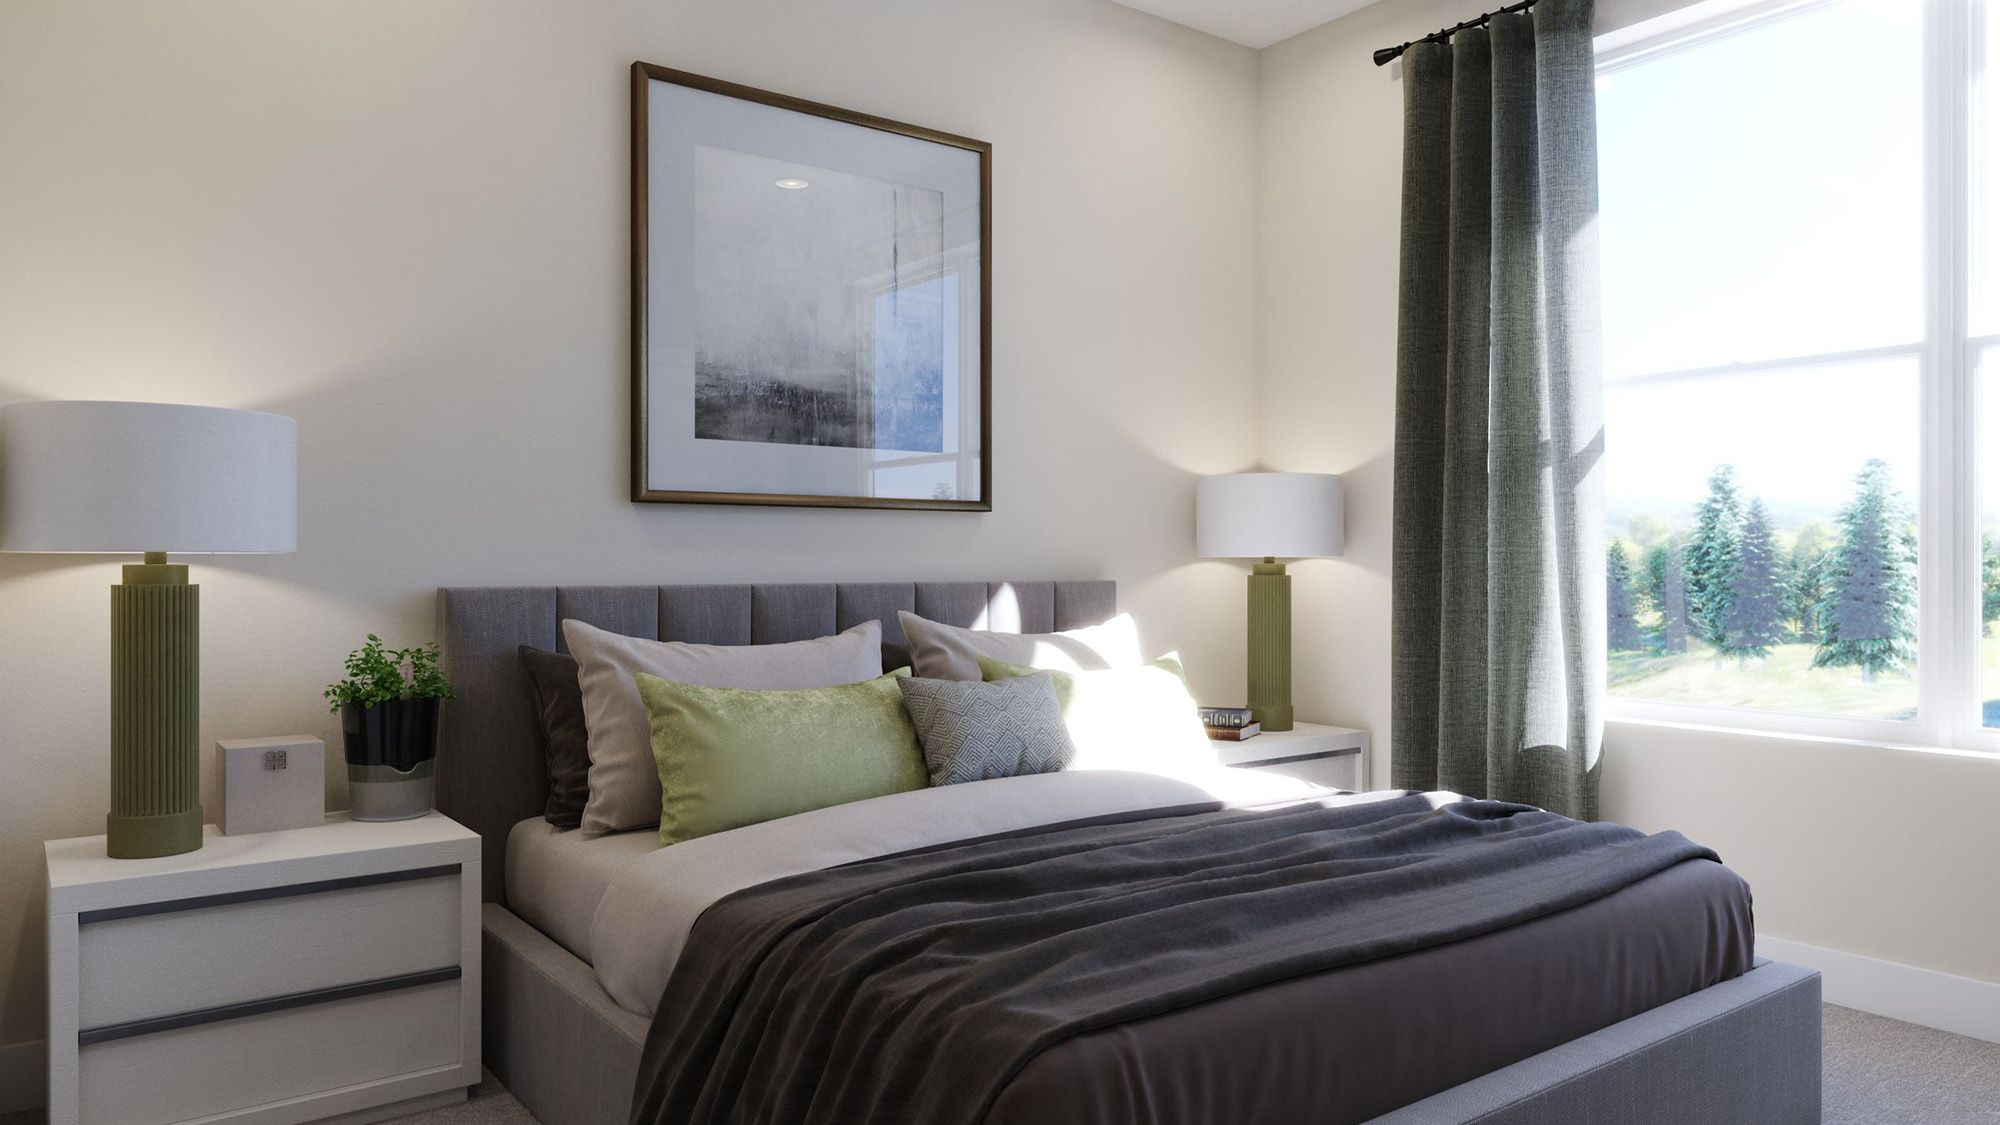 Bedroom featured in the Escape By Thrive Home Builders in Denver, CO